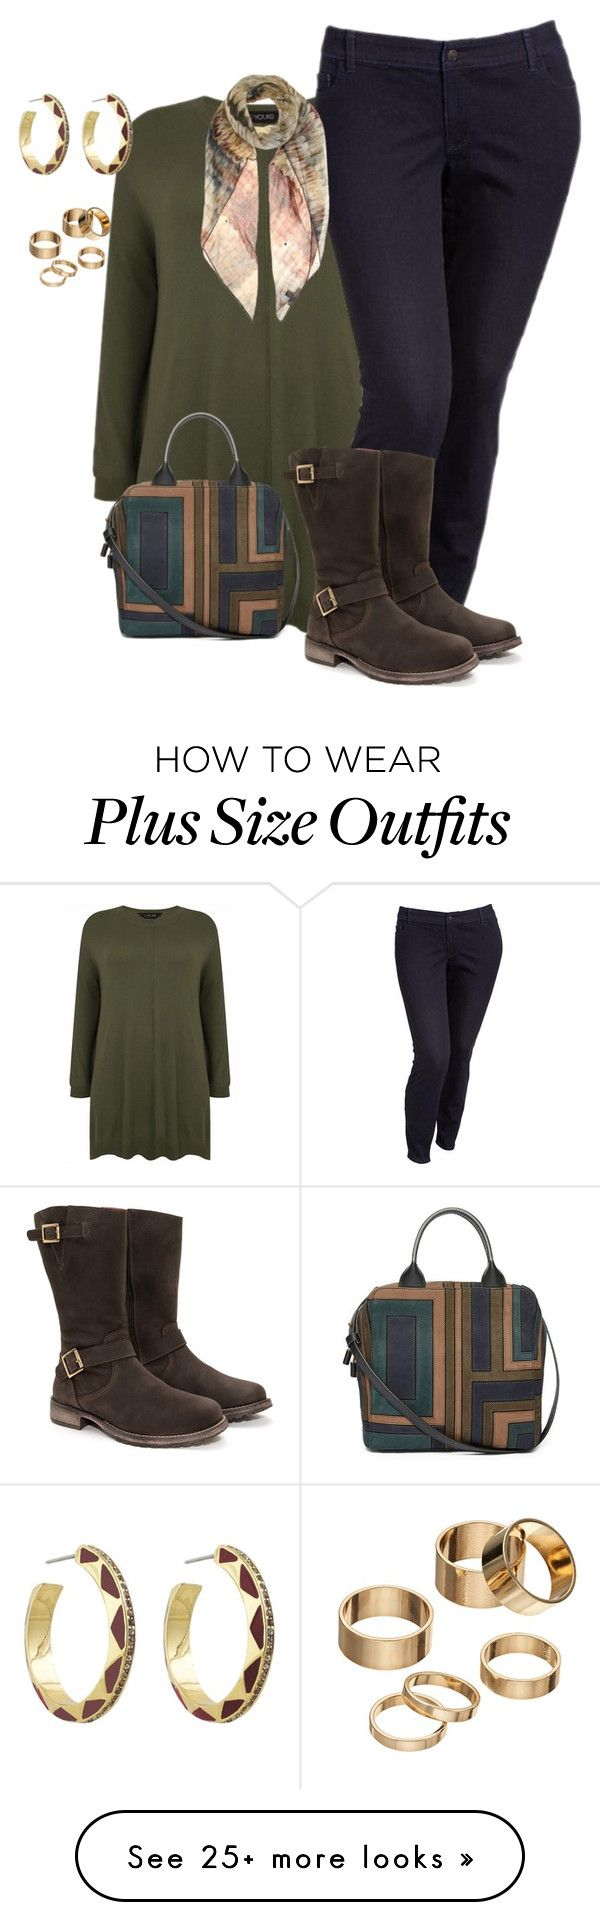 """plus size fall/winter casual chic"" by kristie-payne on Polyvore featuring Old Navy, House of Harlow 1960, Tory Burch, Apt. 9, JJ Footwear and Valentino"